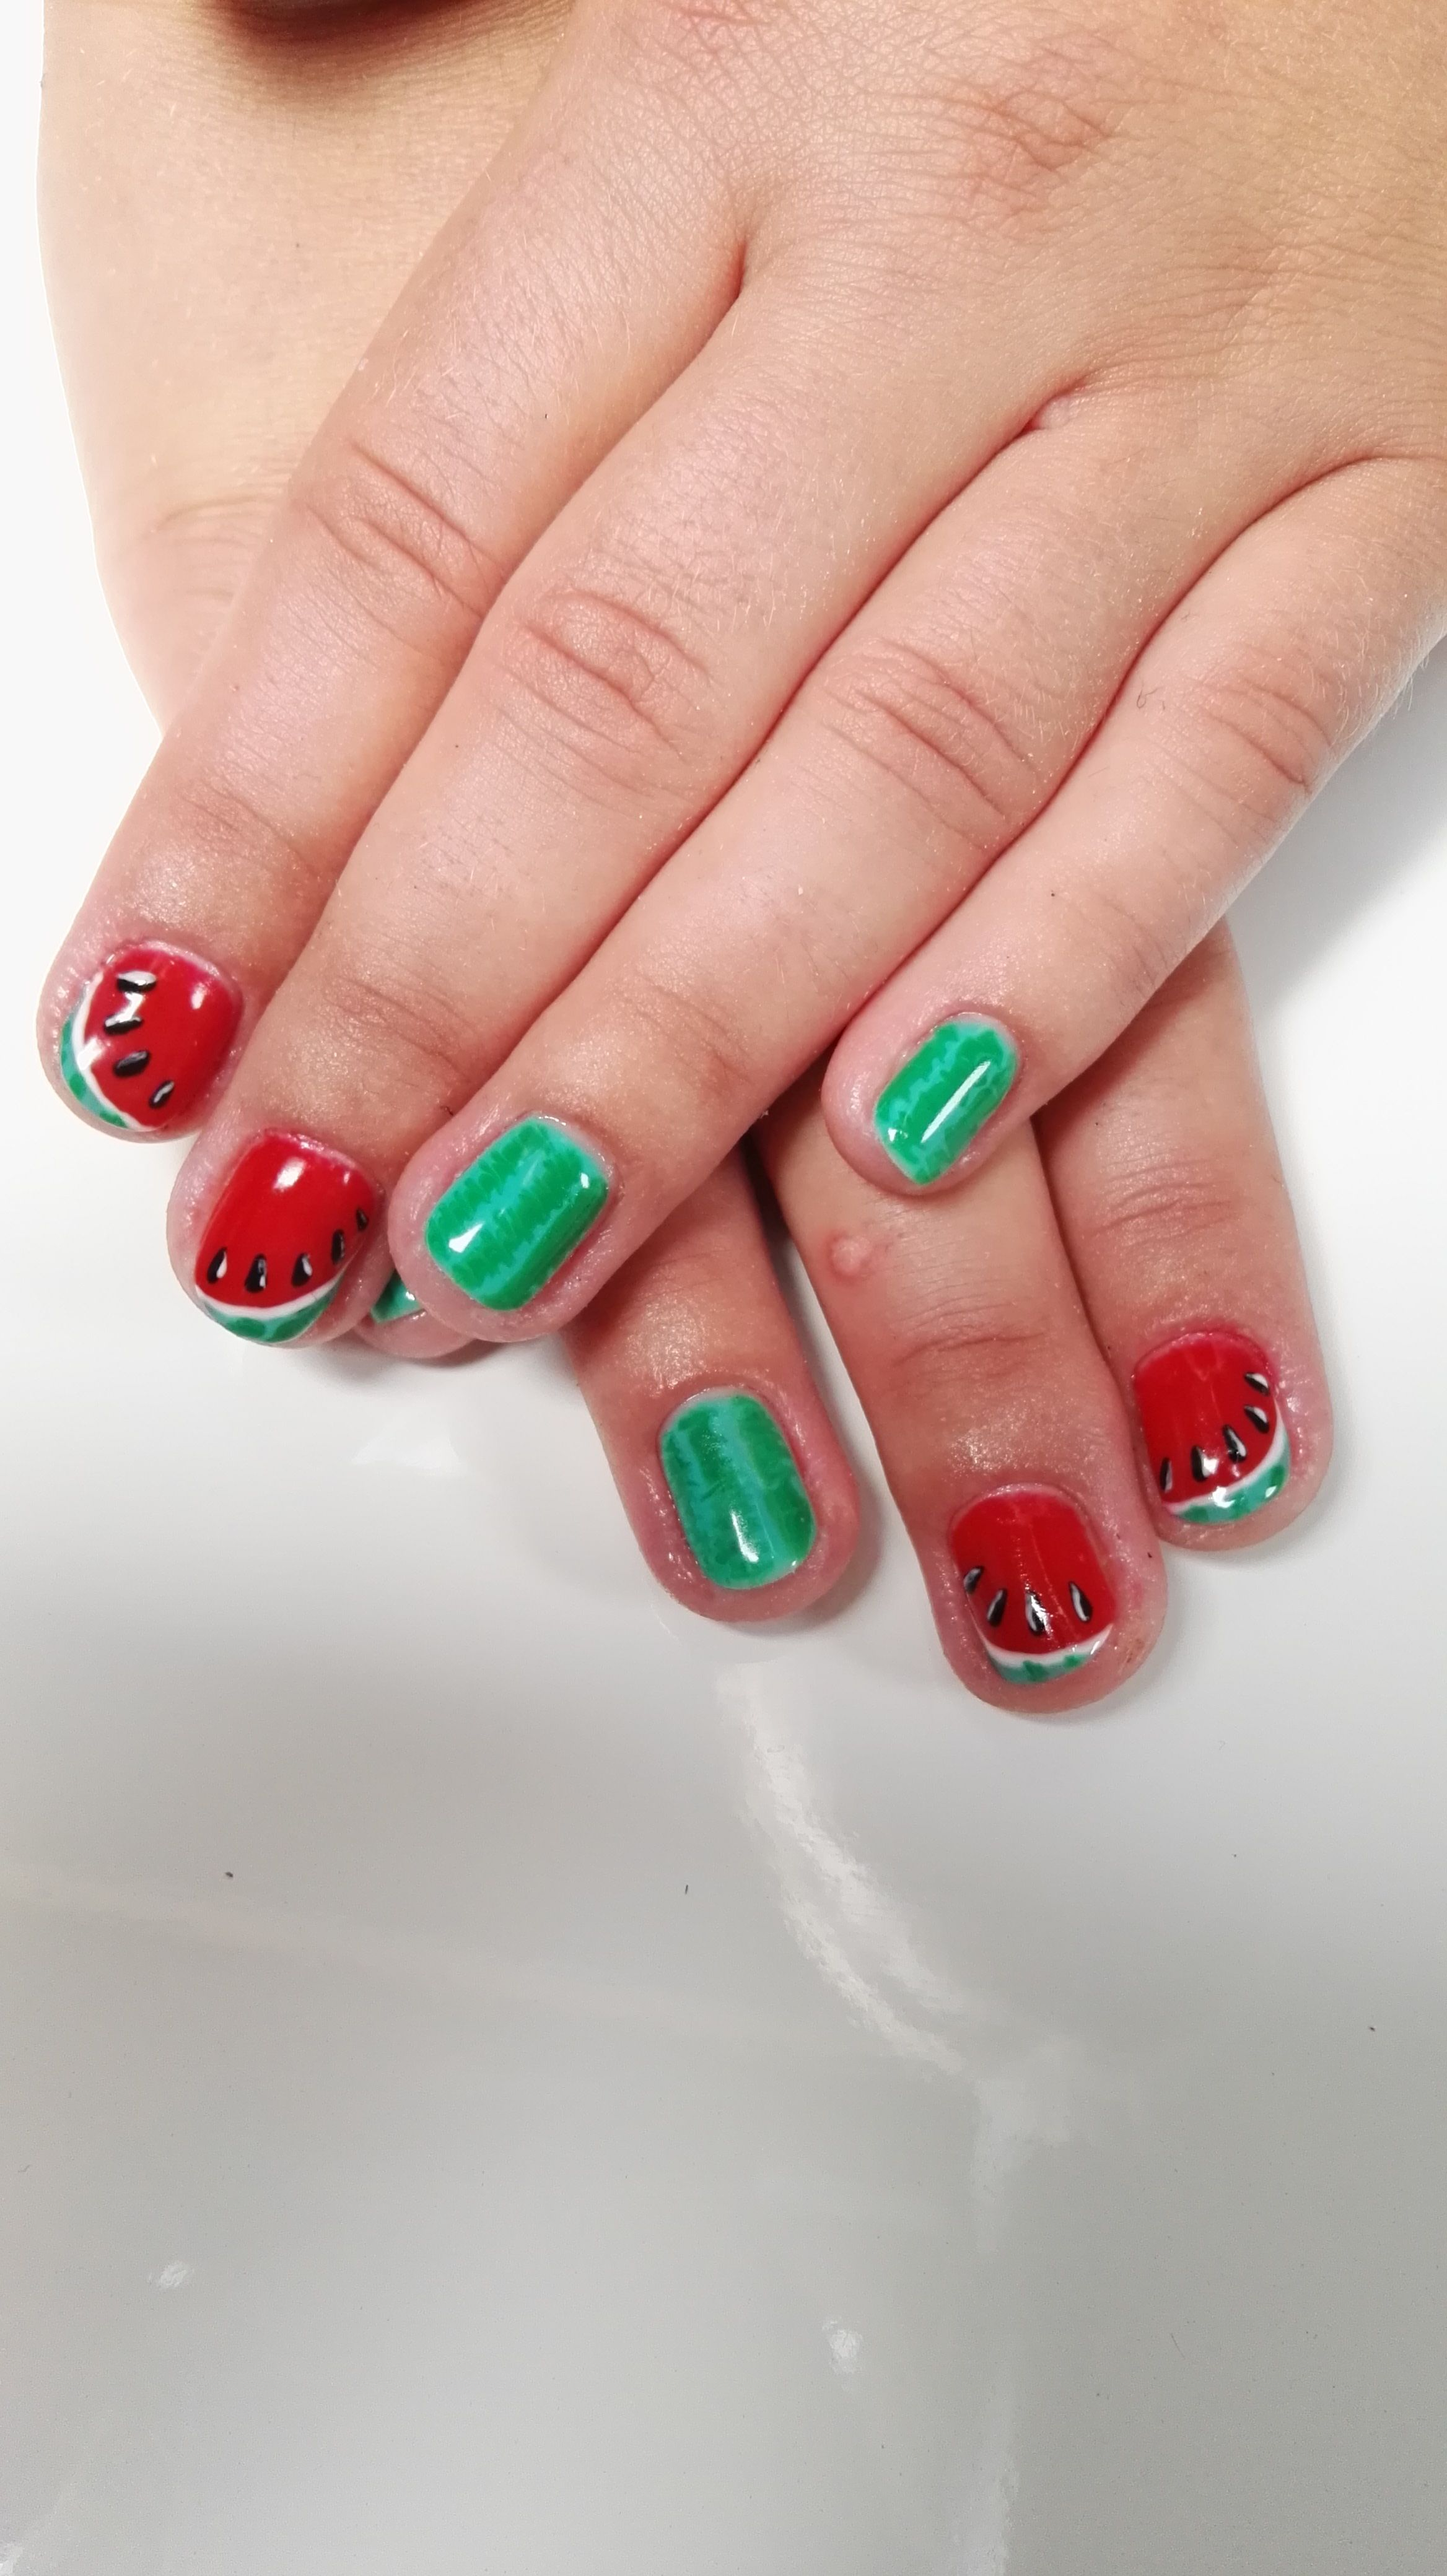 Nail Technician Course with a Diploma Tel. 01452 311 829